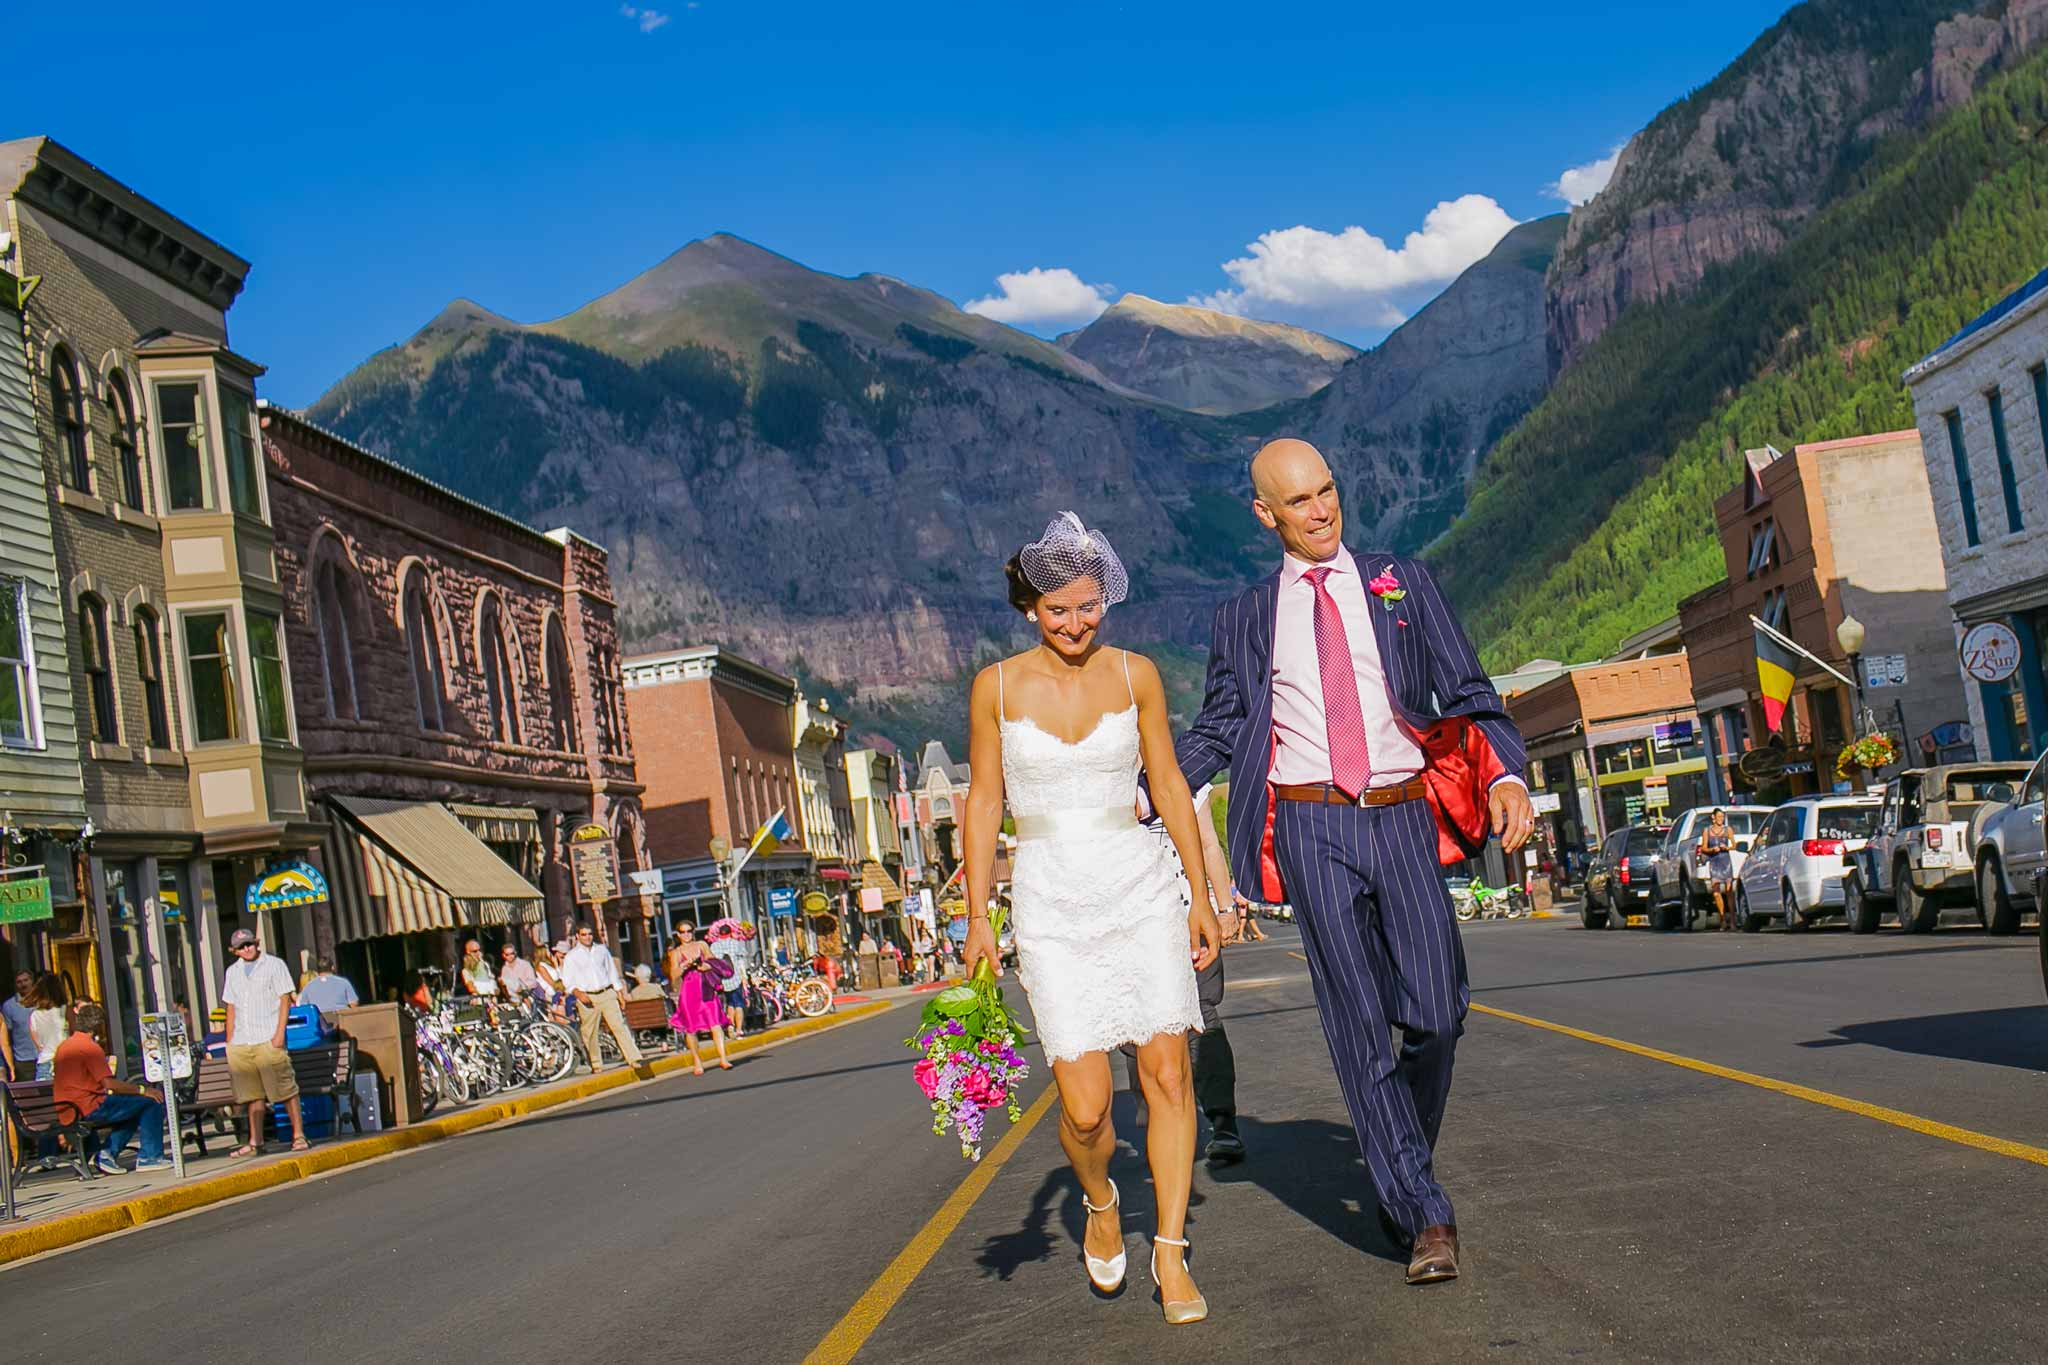 Bride and groom in front of New Sheridan Hotel in Telluride